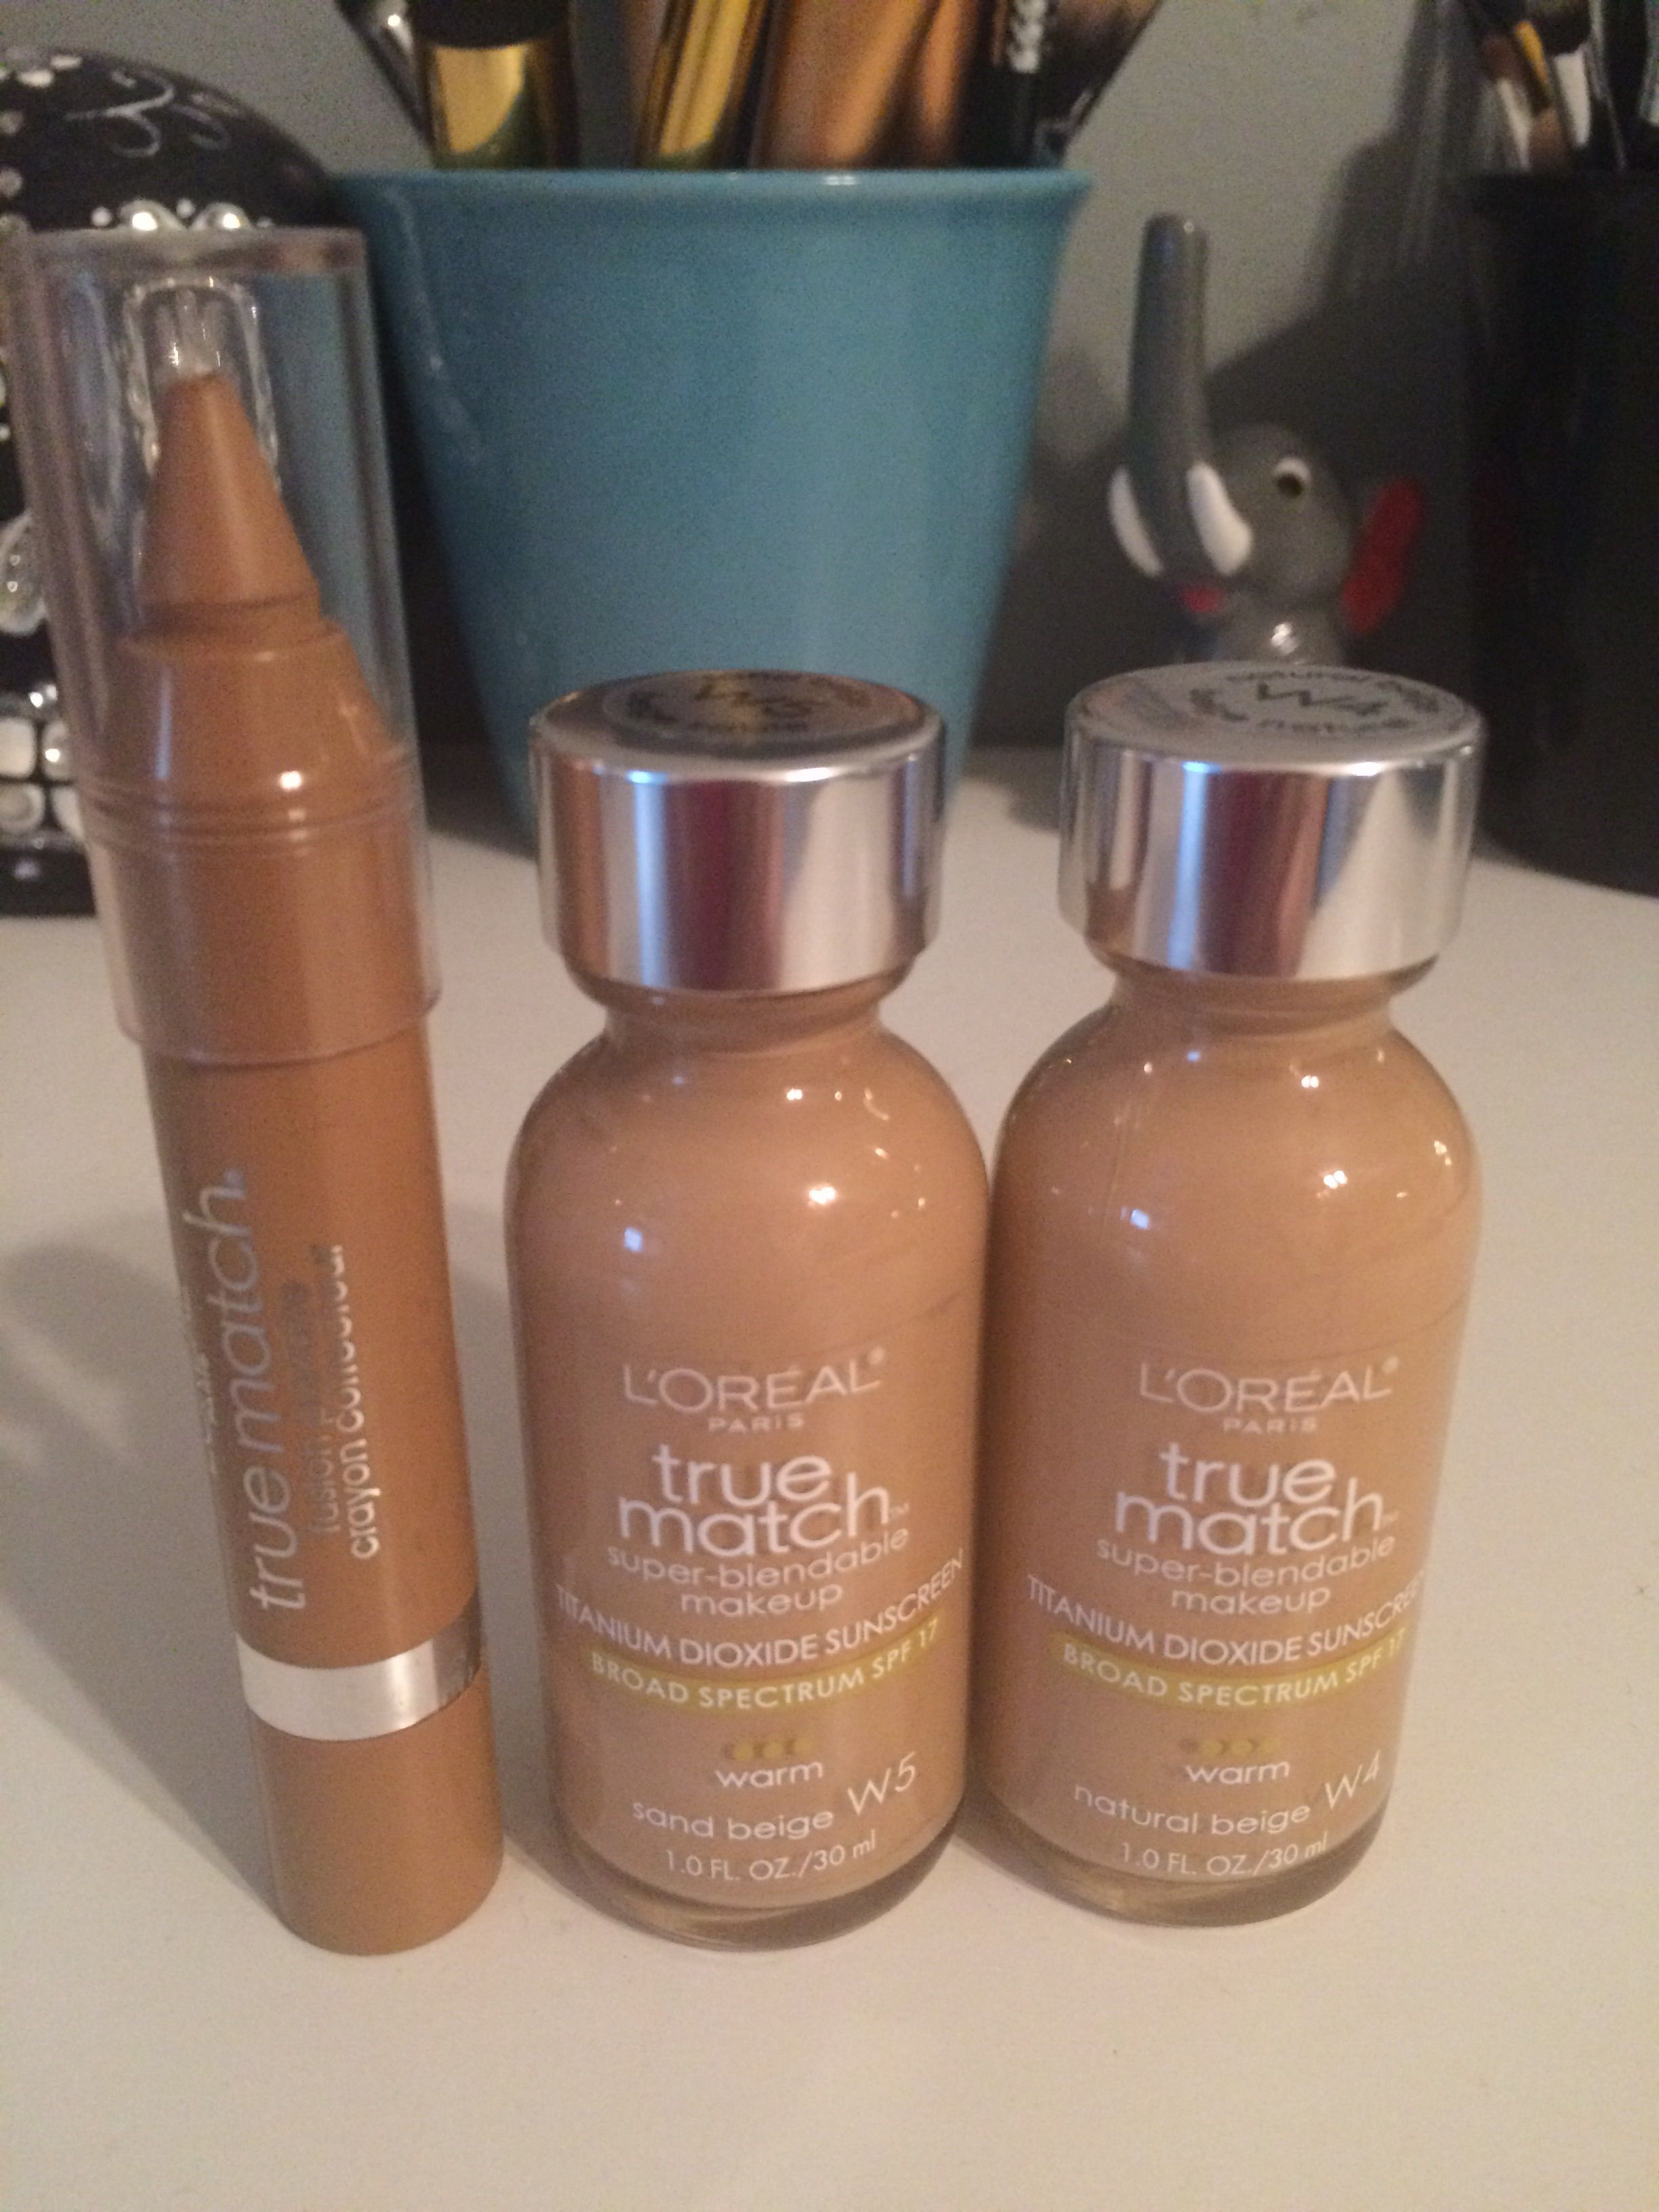 Swap/Sell in Lot. Foundations in W4 & W5 both used once. Concealer in W6-7-8 swatched once.